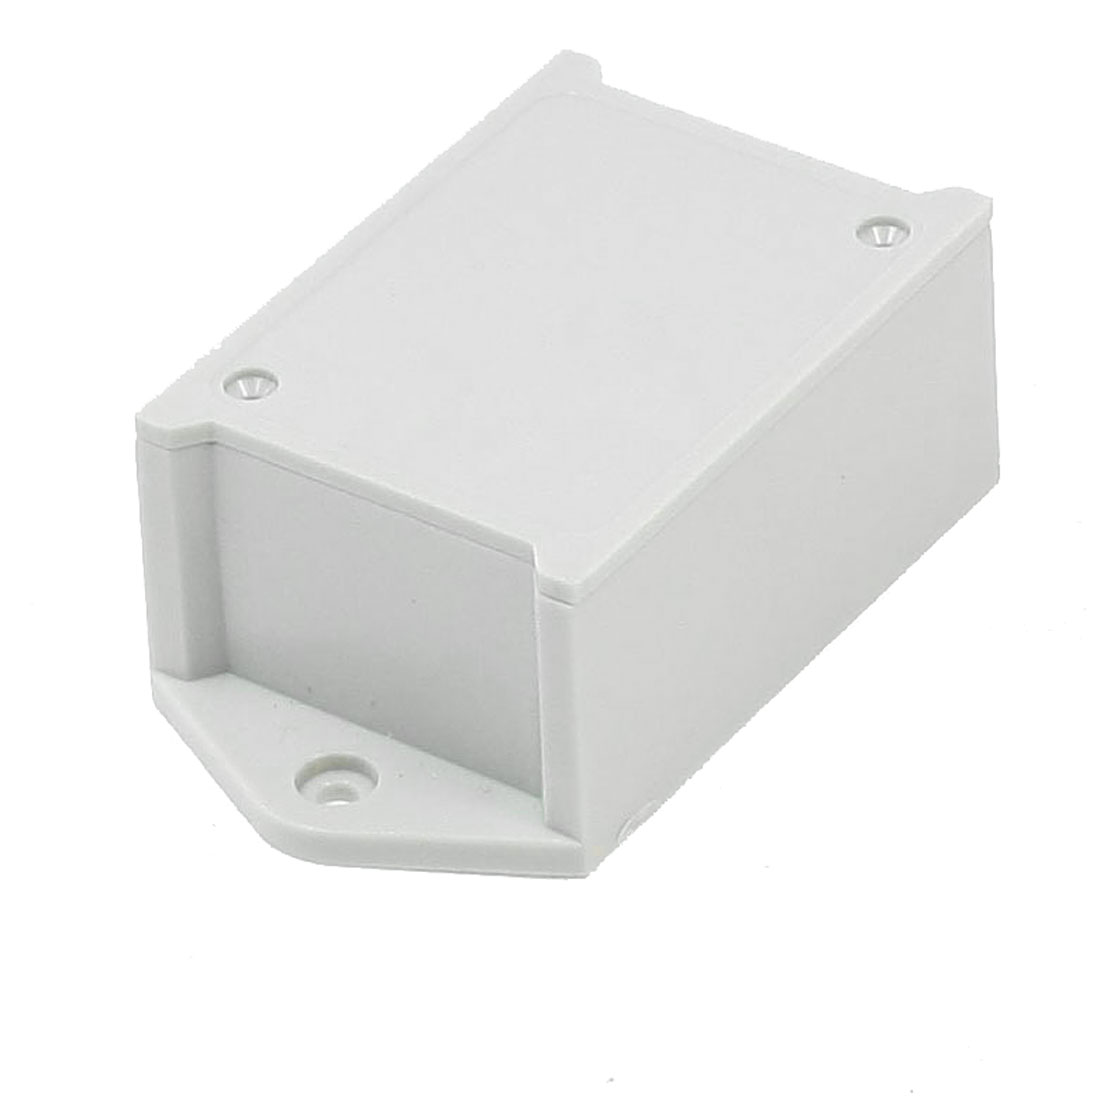 54mm x 38mm x 25mm Plastic Enclosure Case DIY Junction Box